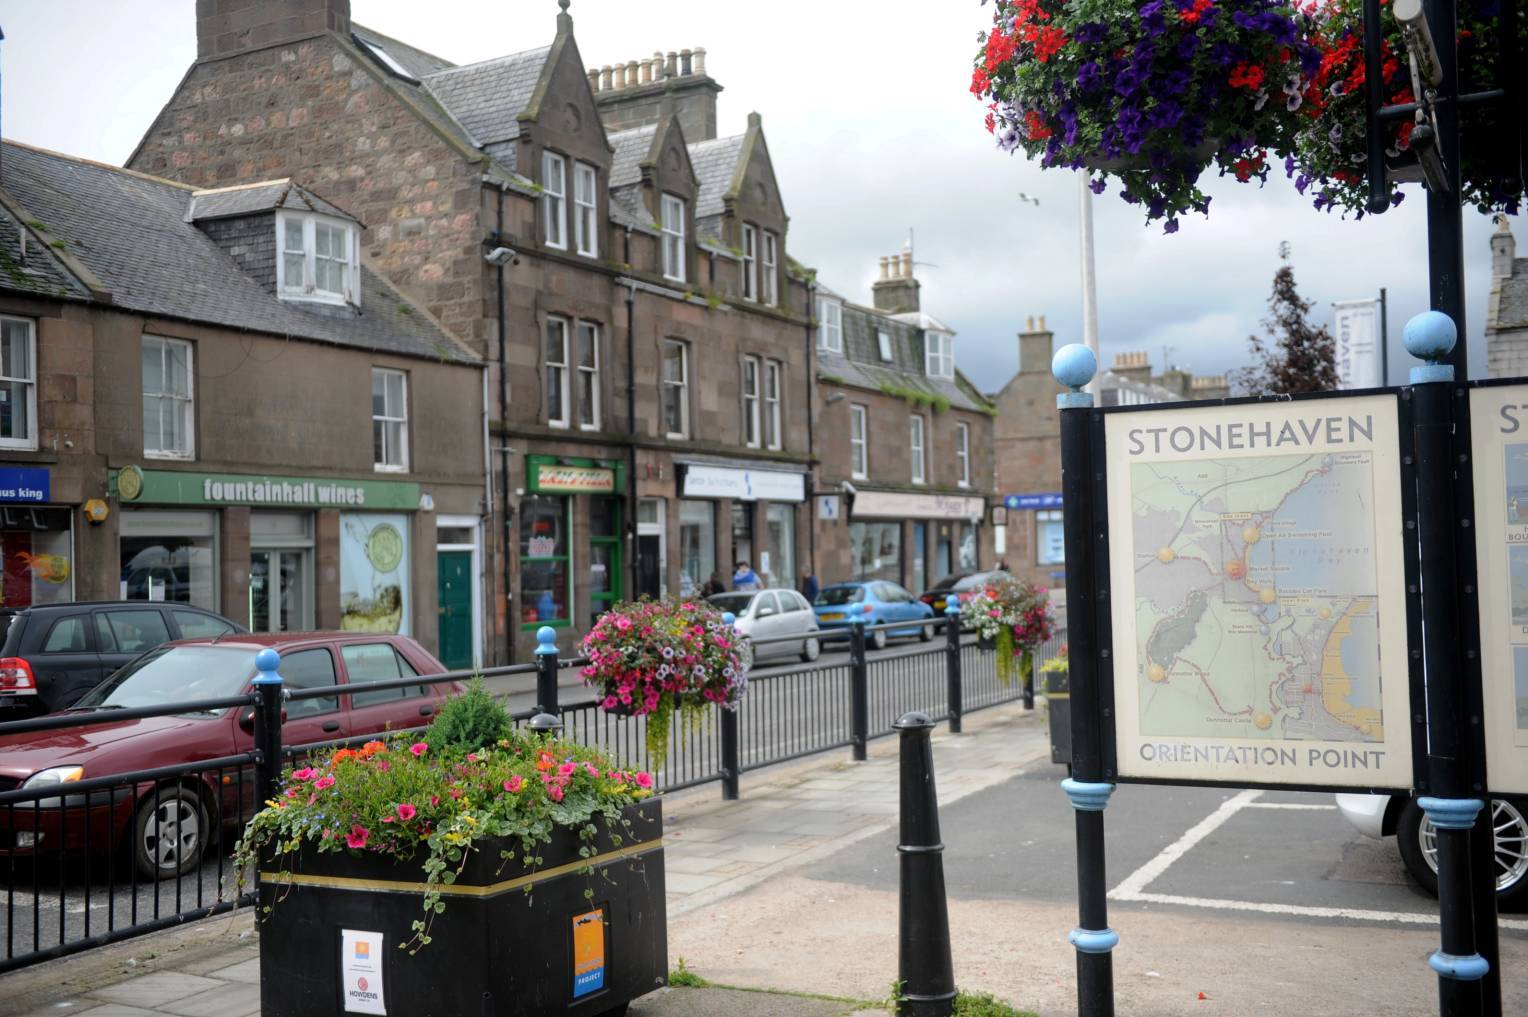 Reports commissioned by Aberdeenshire Council and Sluie Estate Trust over a planned store in Stonehaven disagree over the town centre impact.